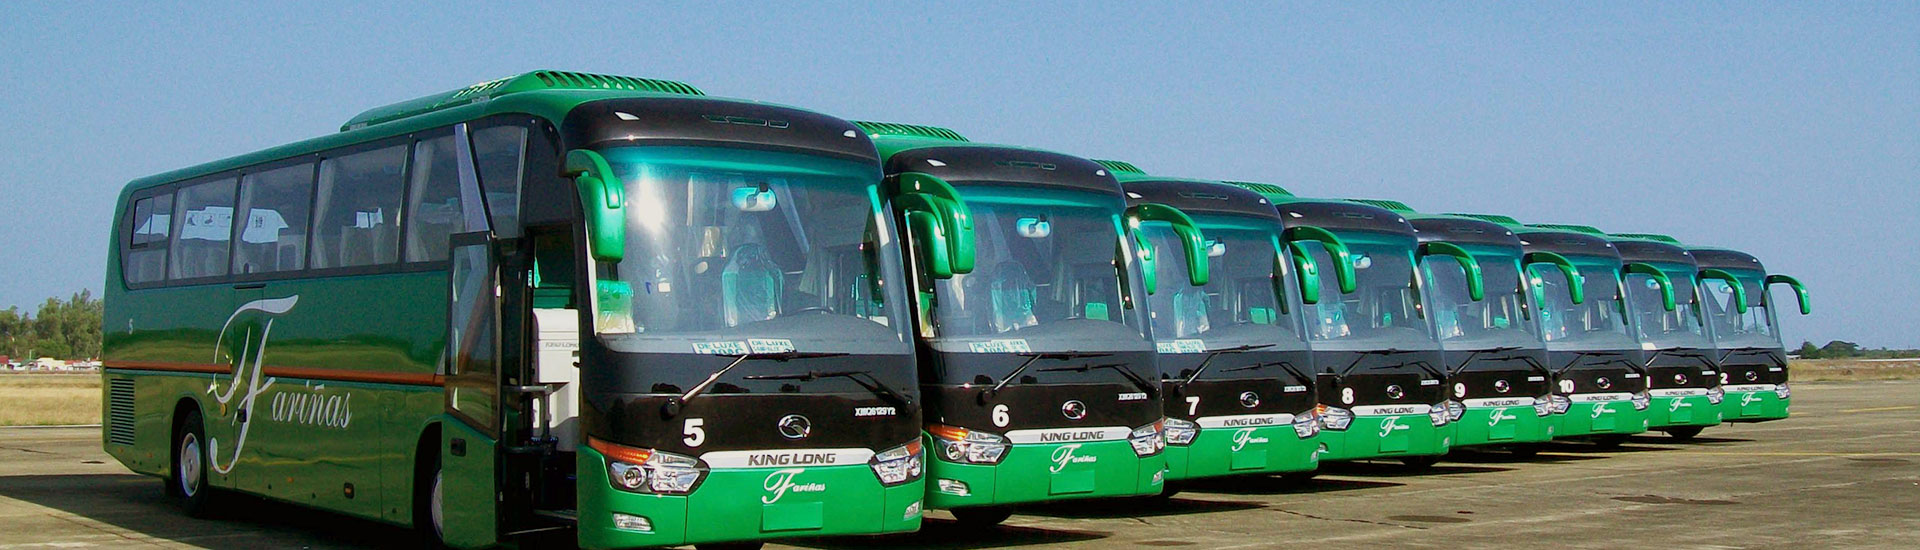 Farinas Air-conditioned buses